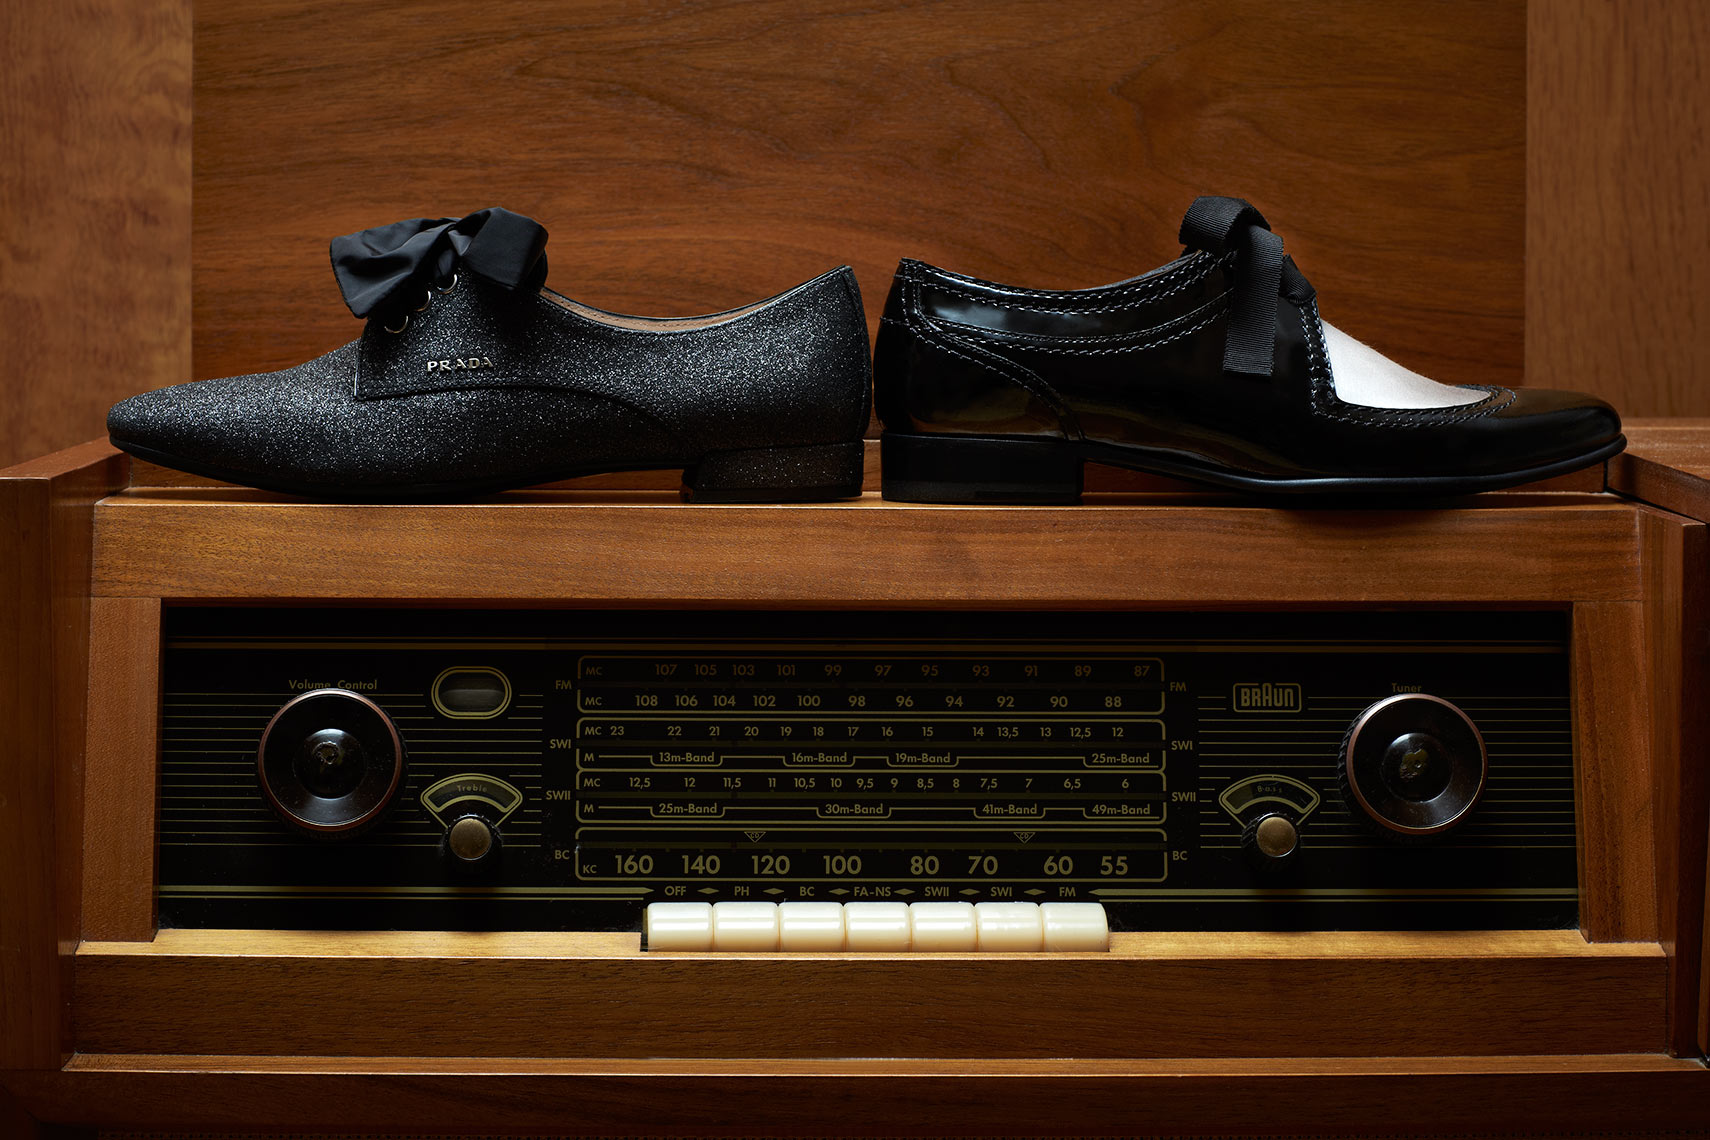 Fashion still life showing shoes on old record player.